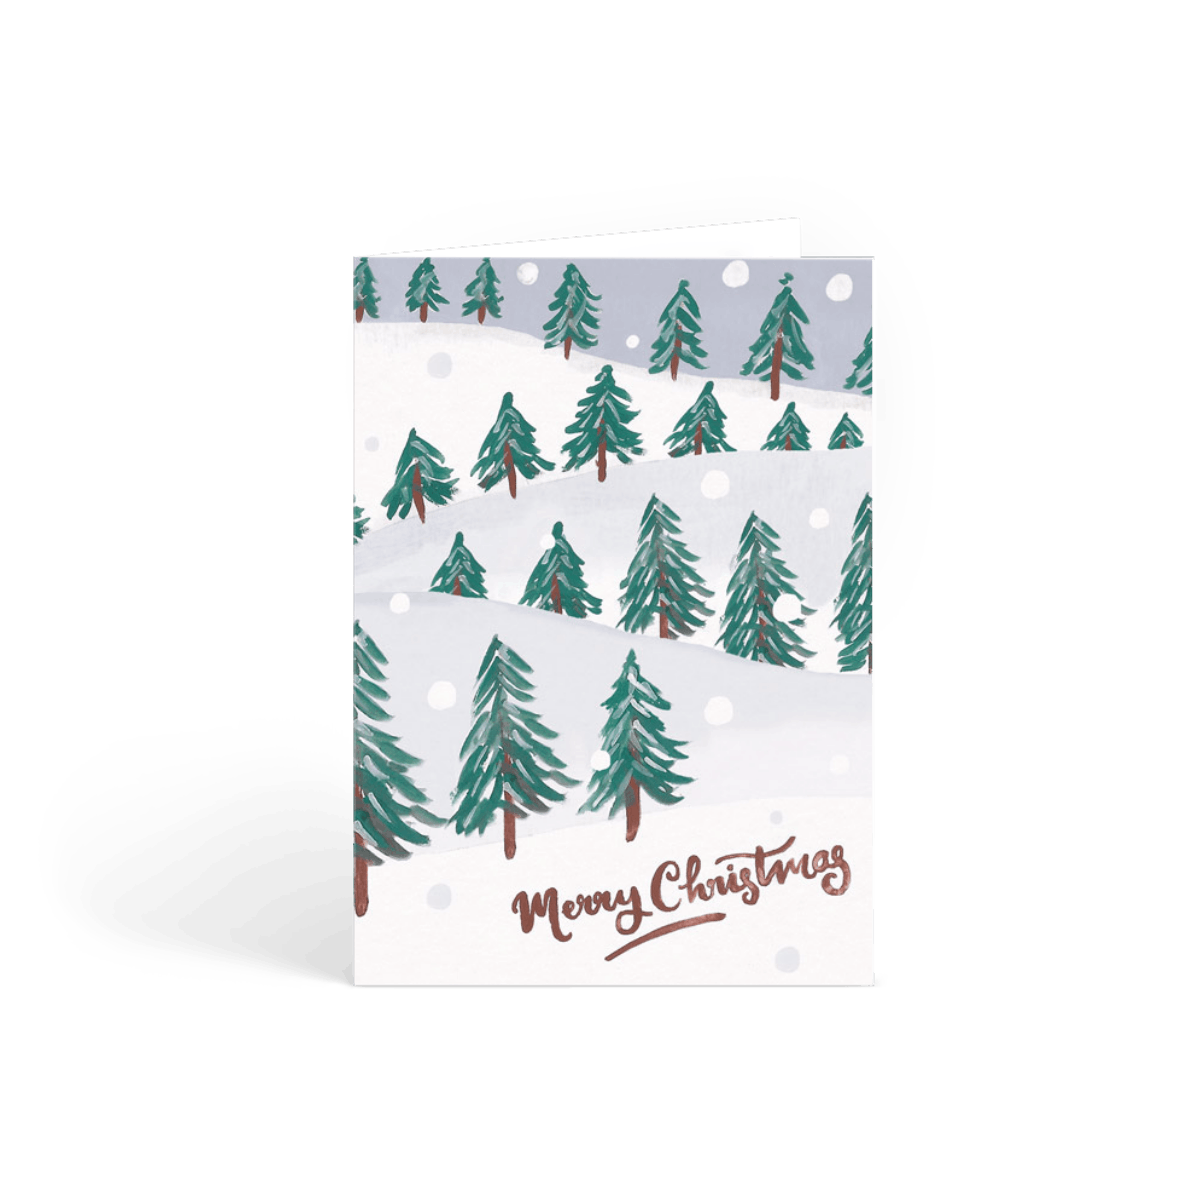 Https%3a%2f%2fwww.papier.com%2fproduct image%2f30182%2f2%2fchristmas forest 7612 front 1509027458.png?ixlib=rb 1.1